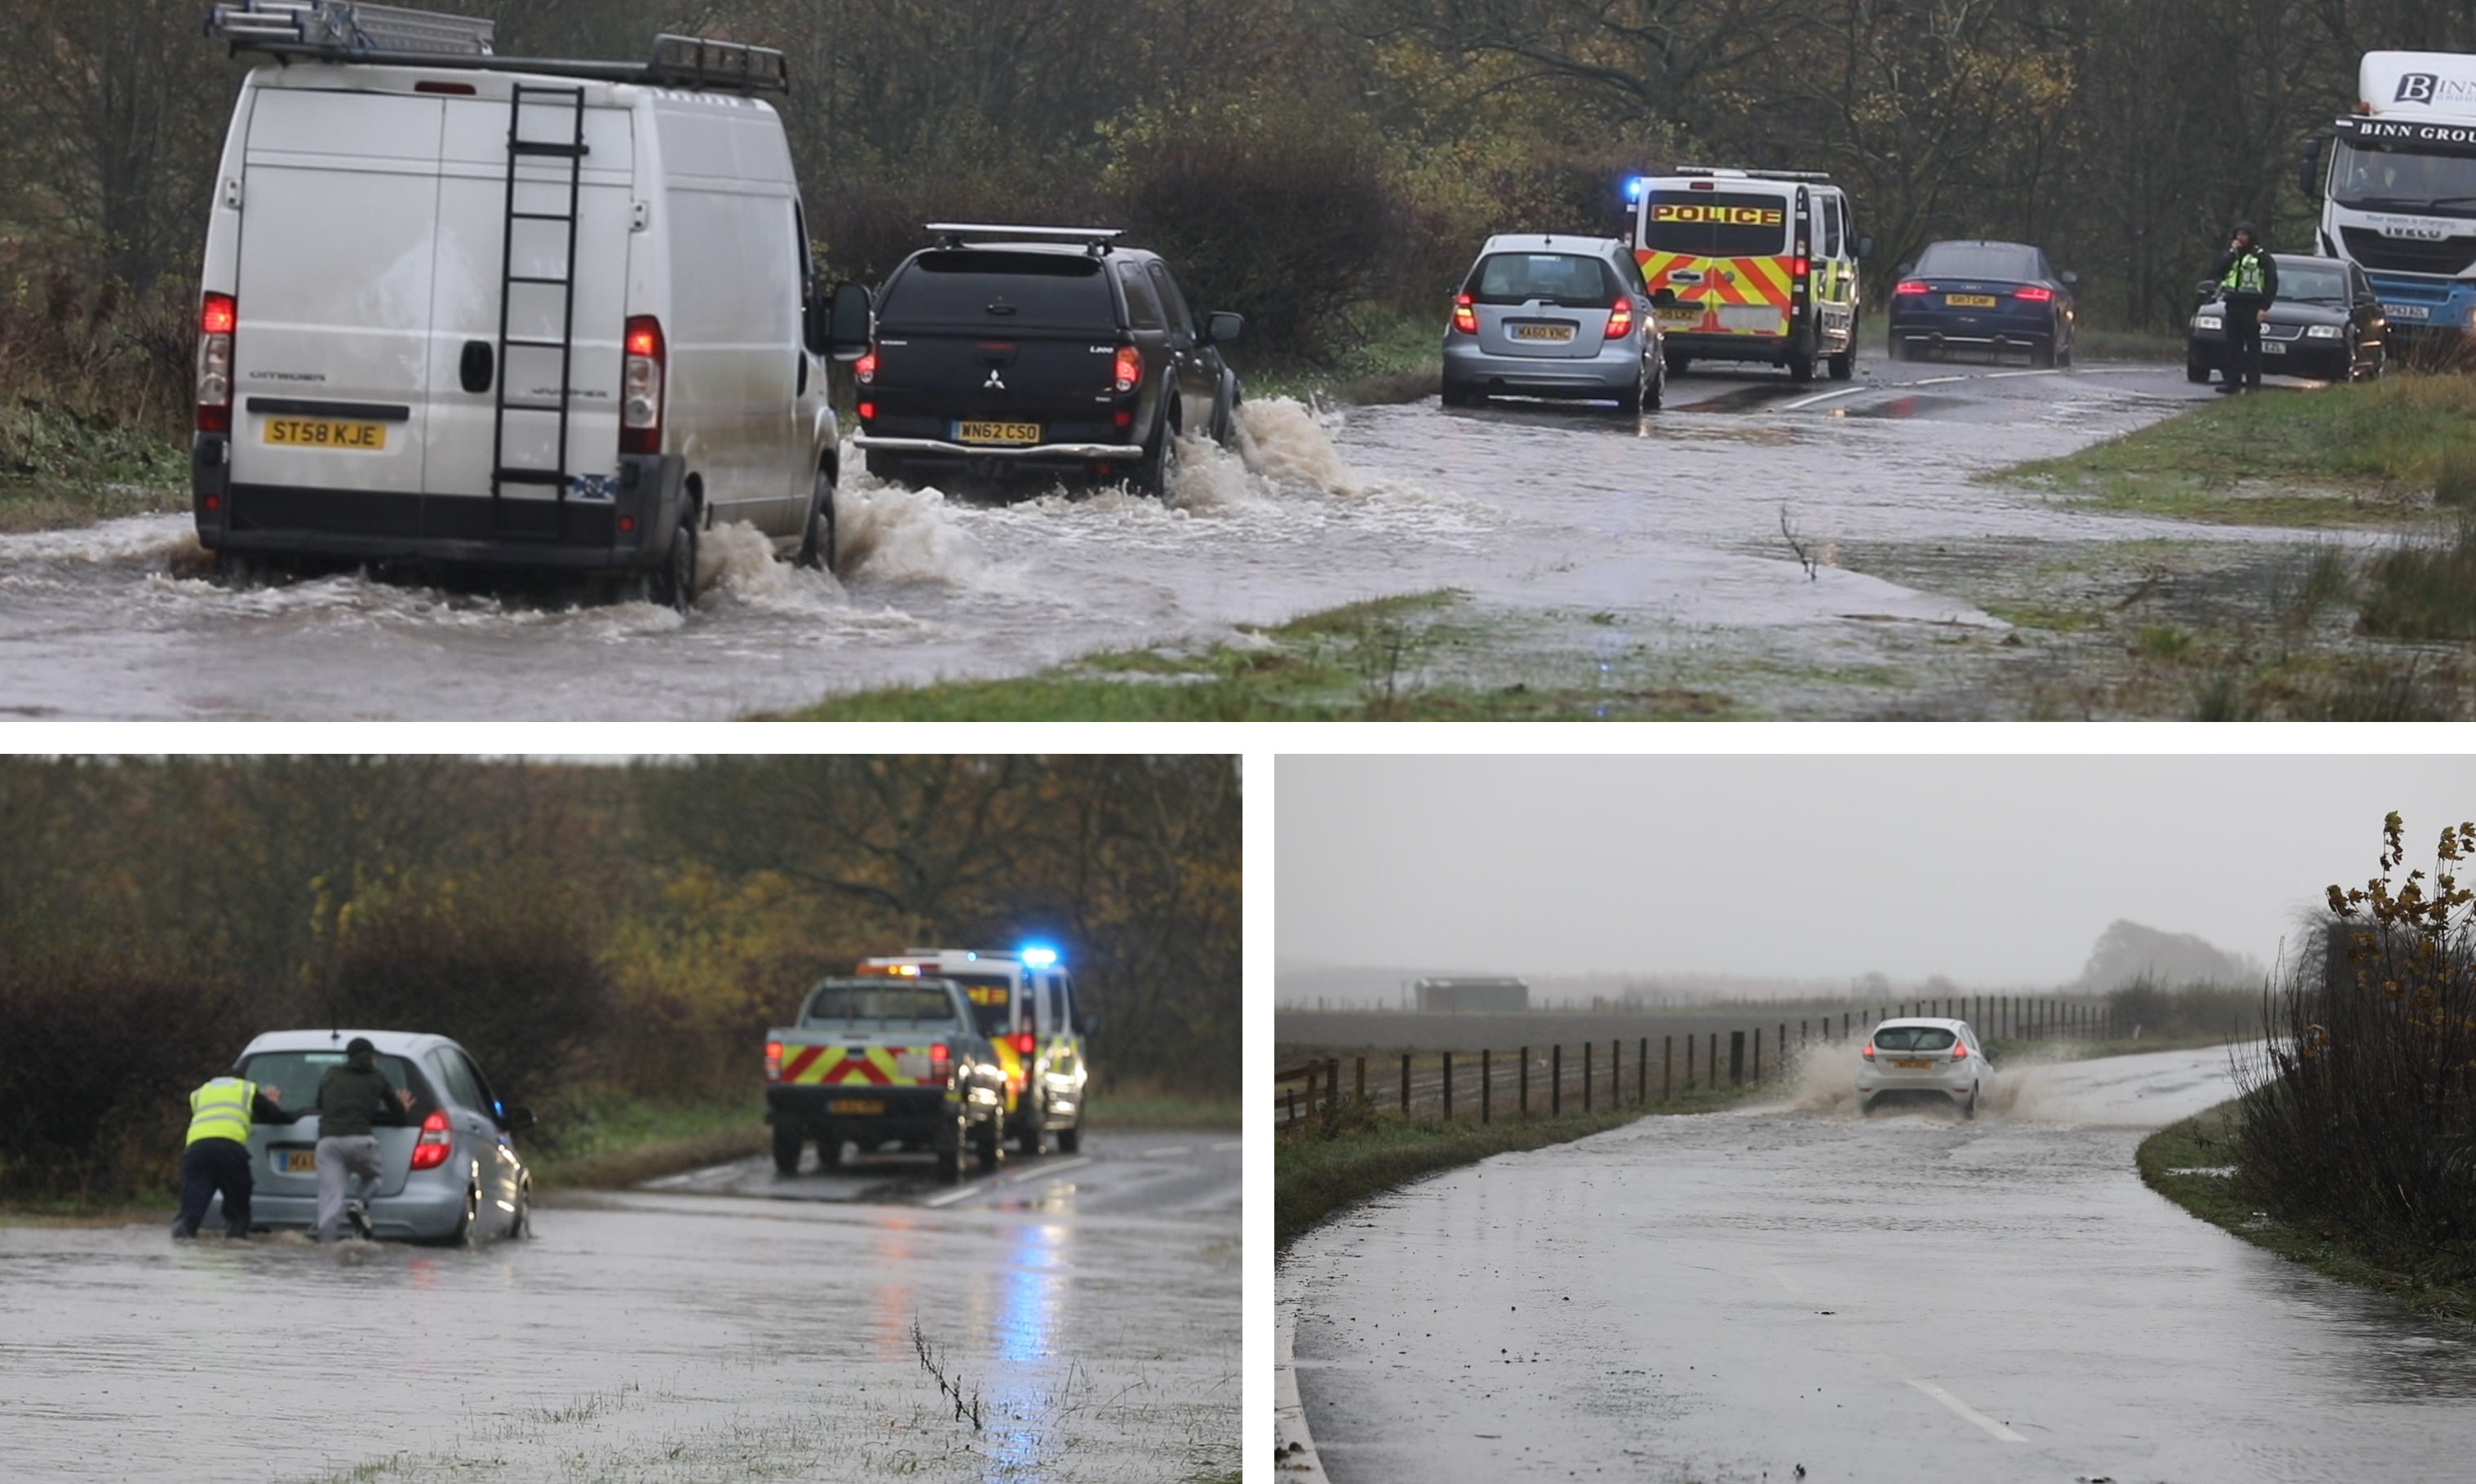 The A912 has been flooded in Fife.